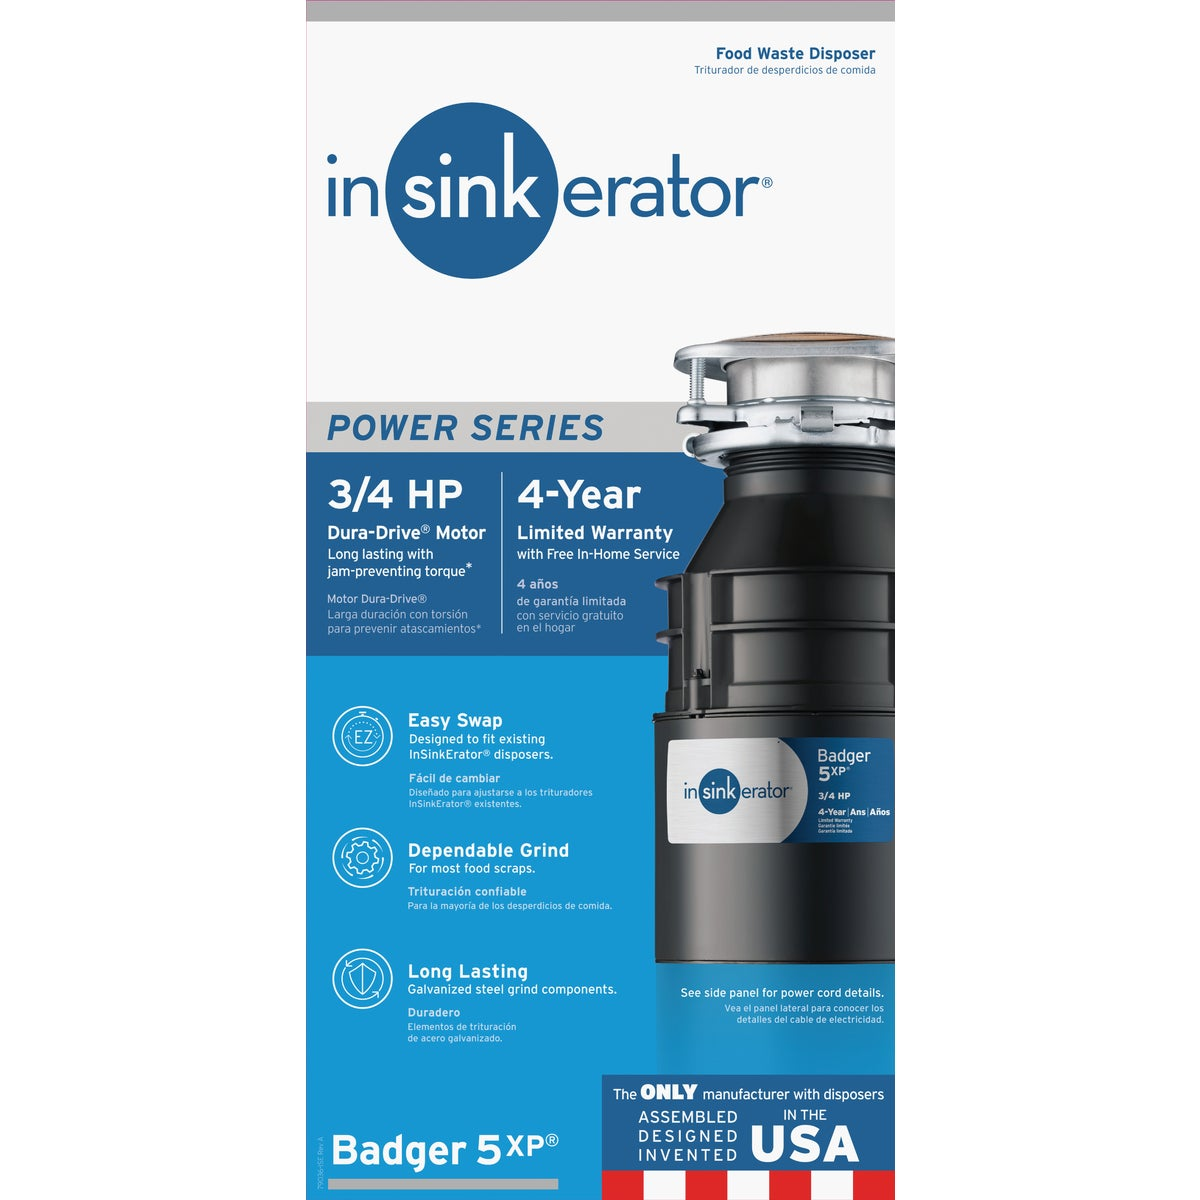 3/4HP GARBAGE DISPOSER - B5XP by Insinkerator Evergrd